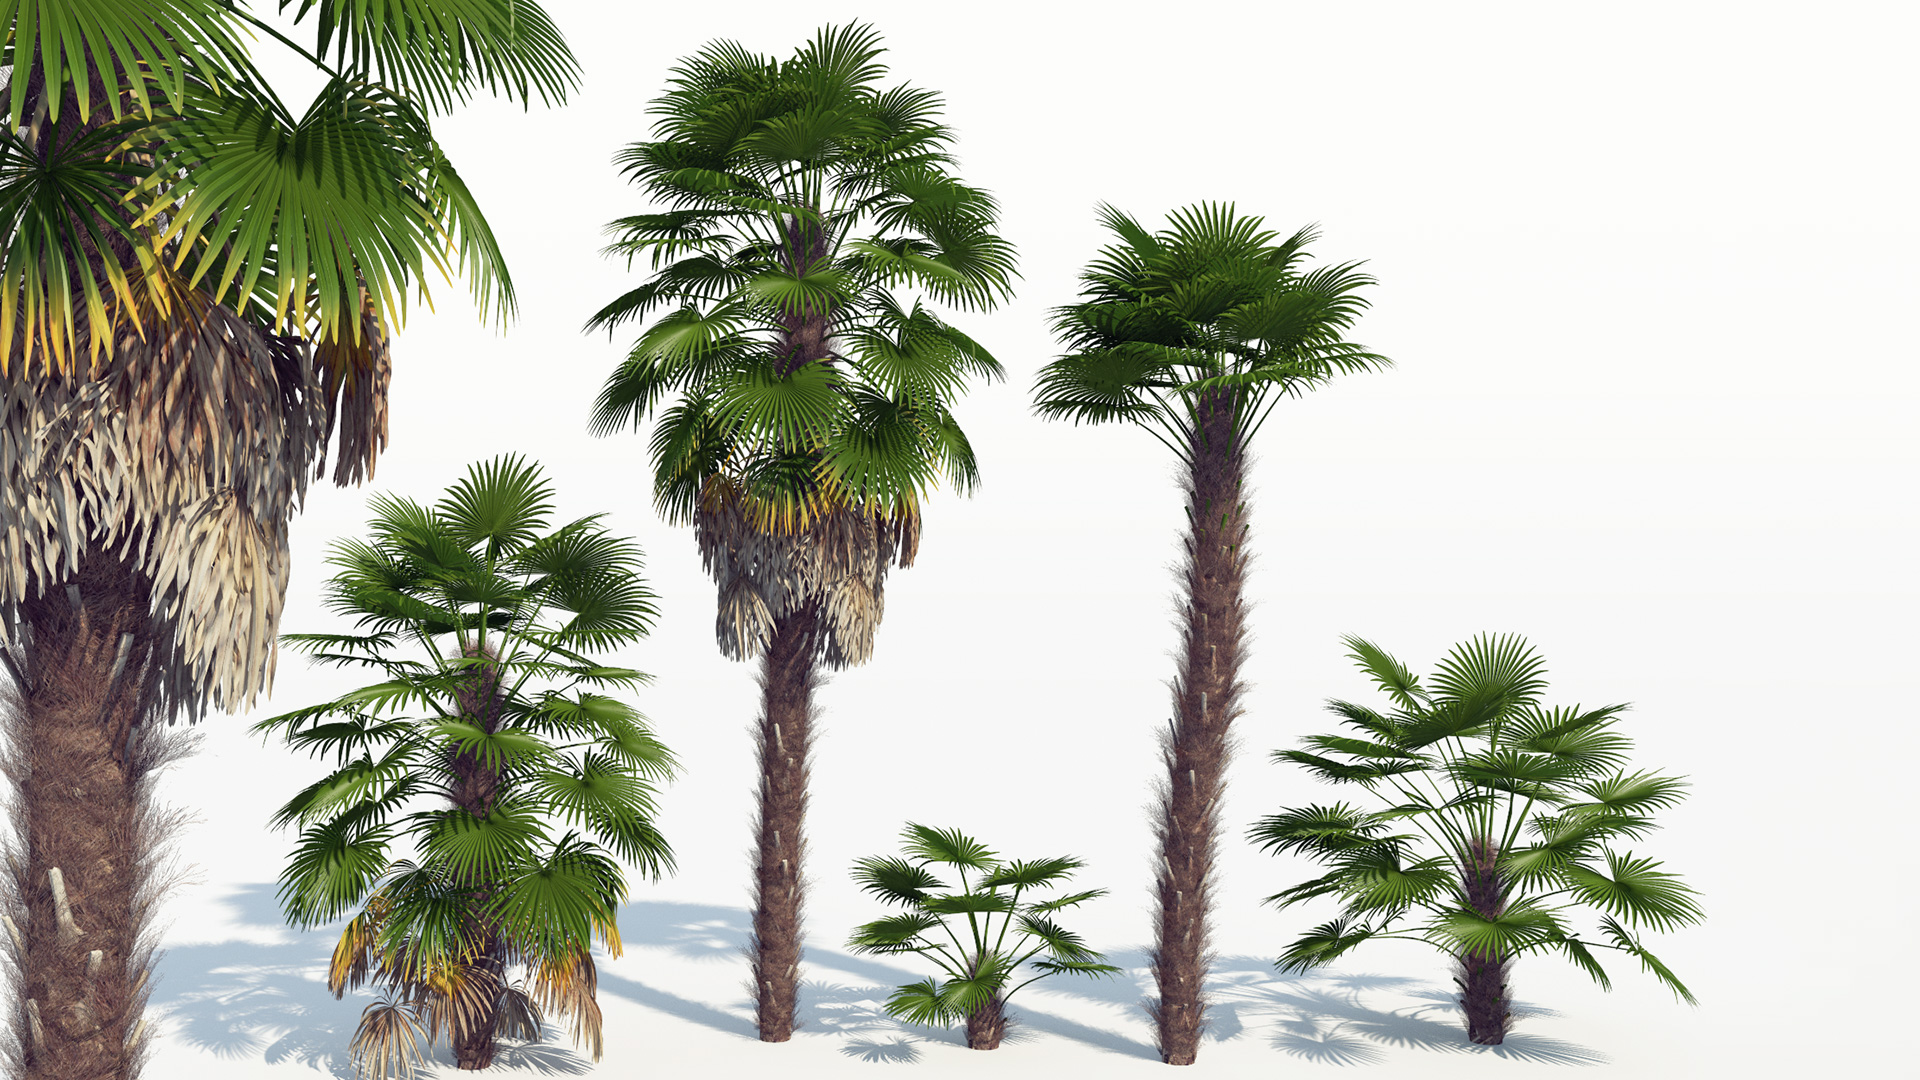 3D model of the Windmill palm Trachycarpus fortunei different presets